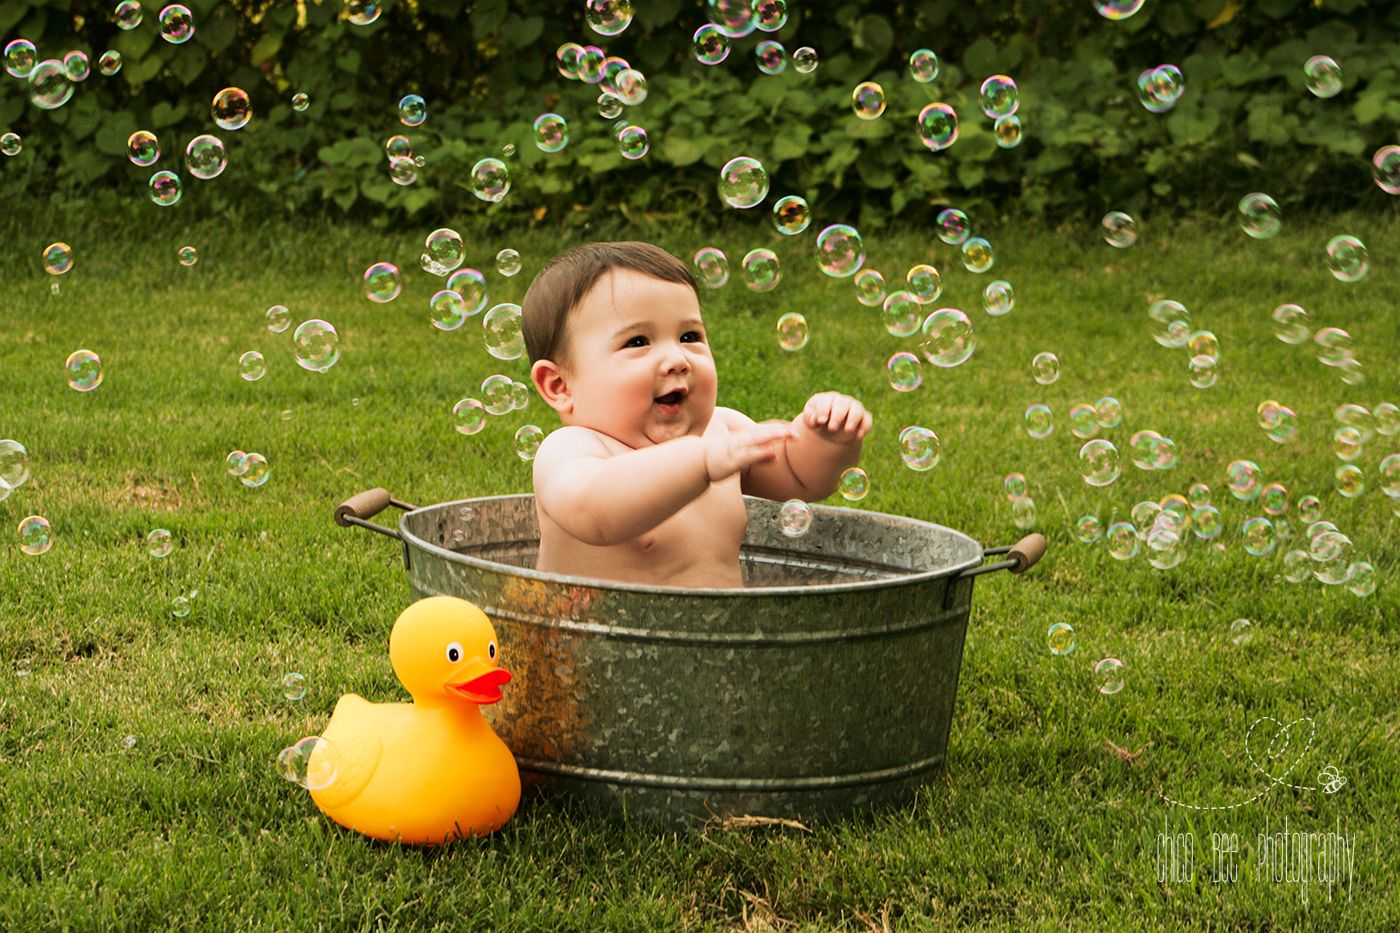 Cuteness Overload Baby Boy With Bubbles And Giant Rubber